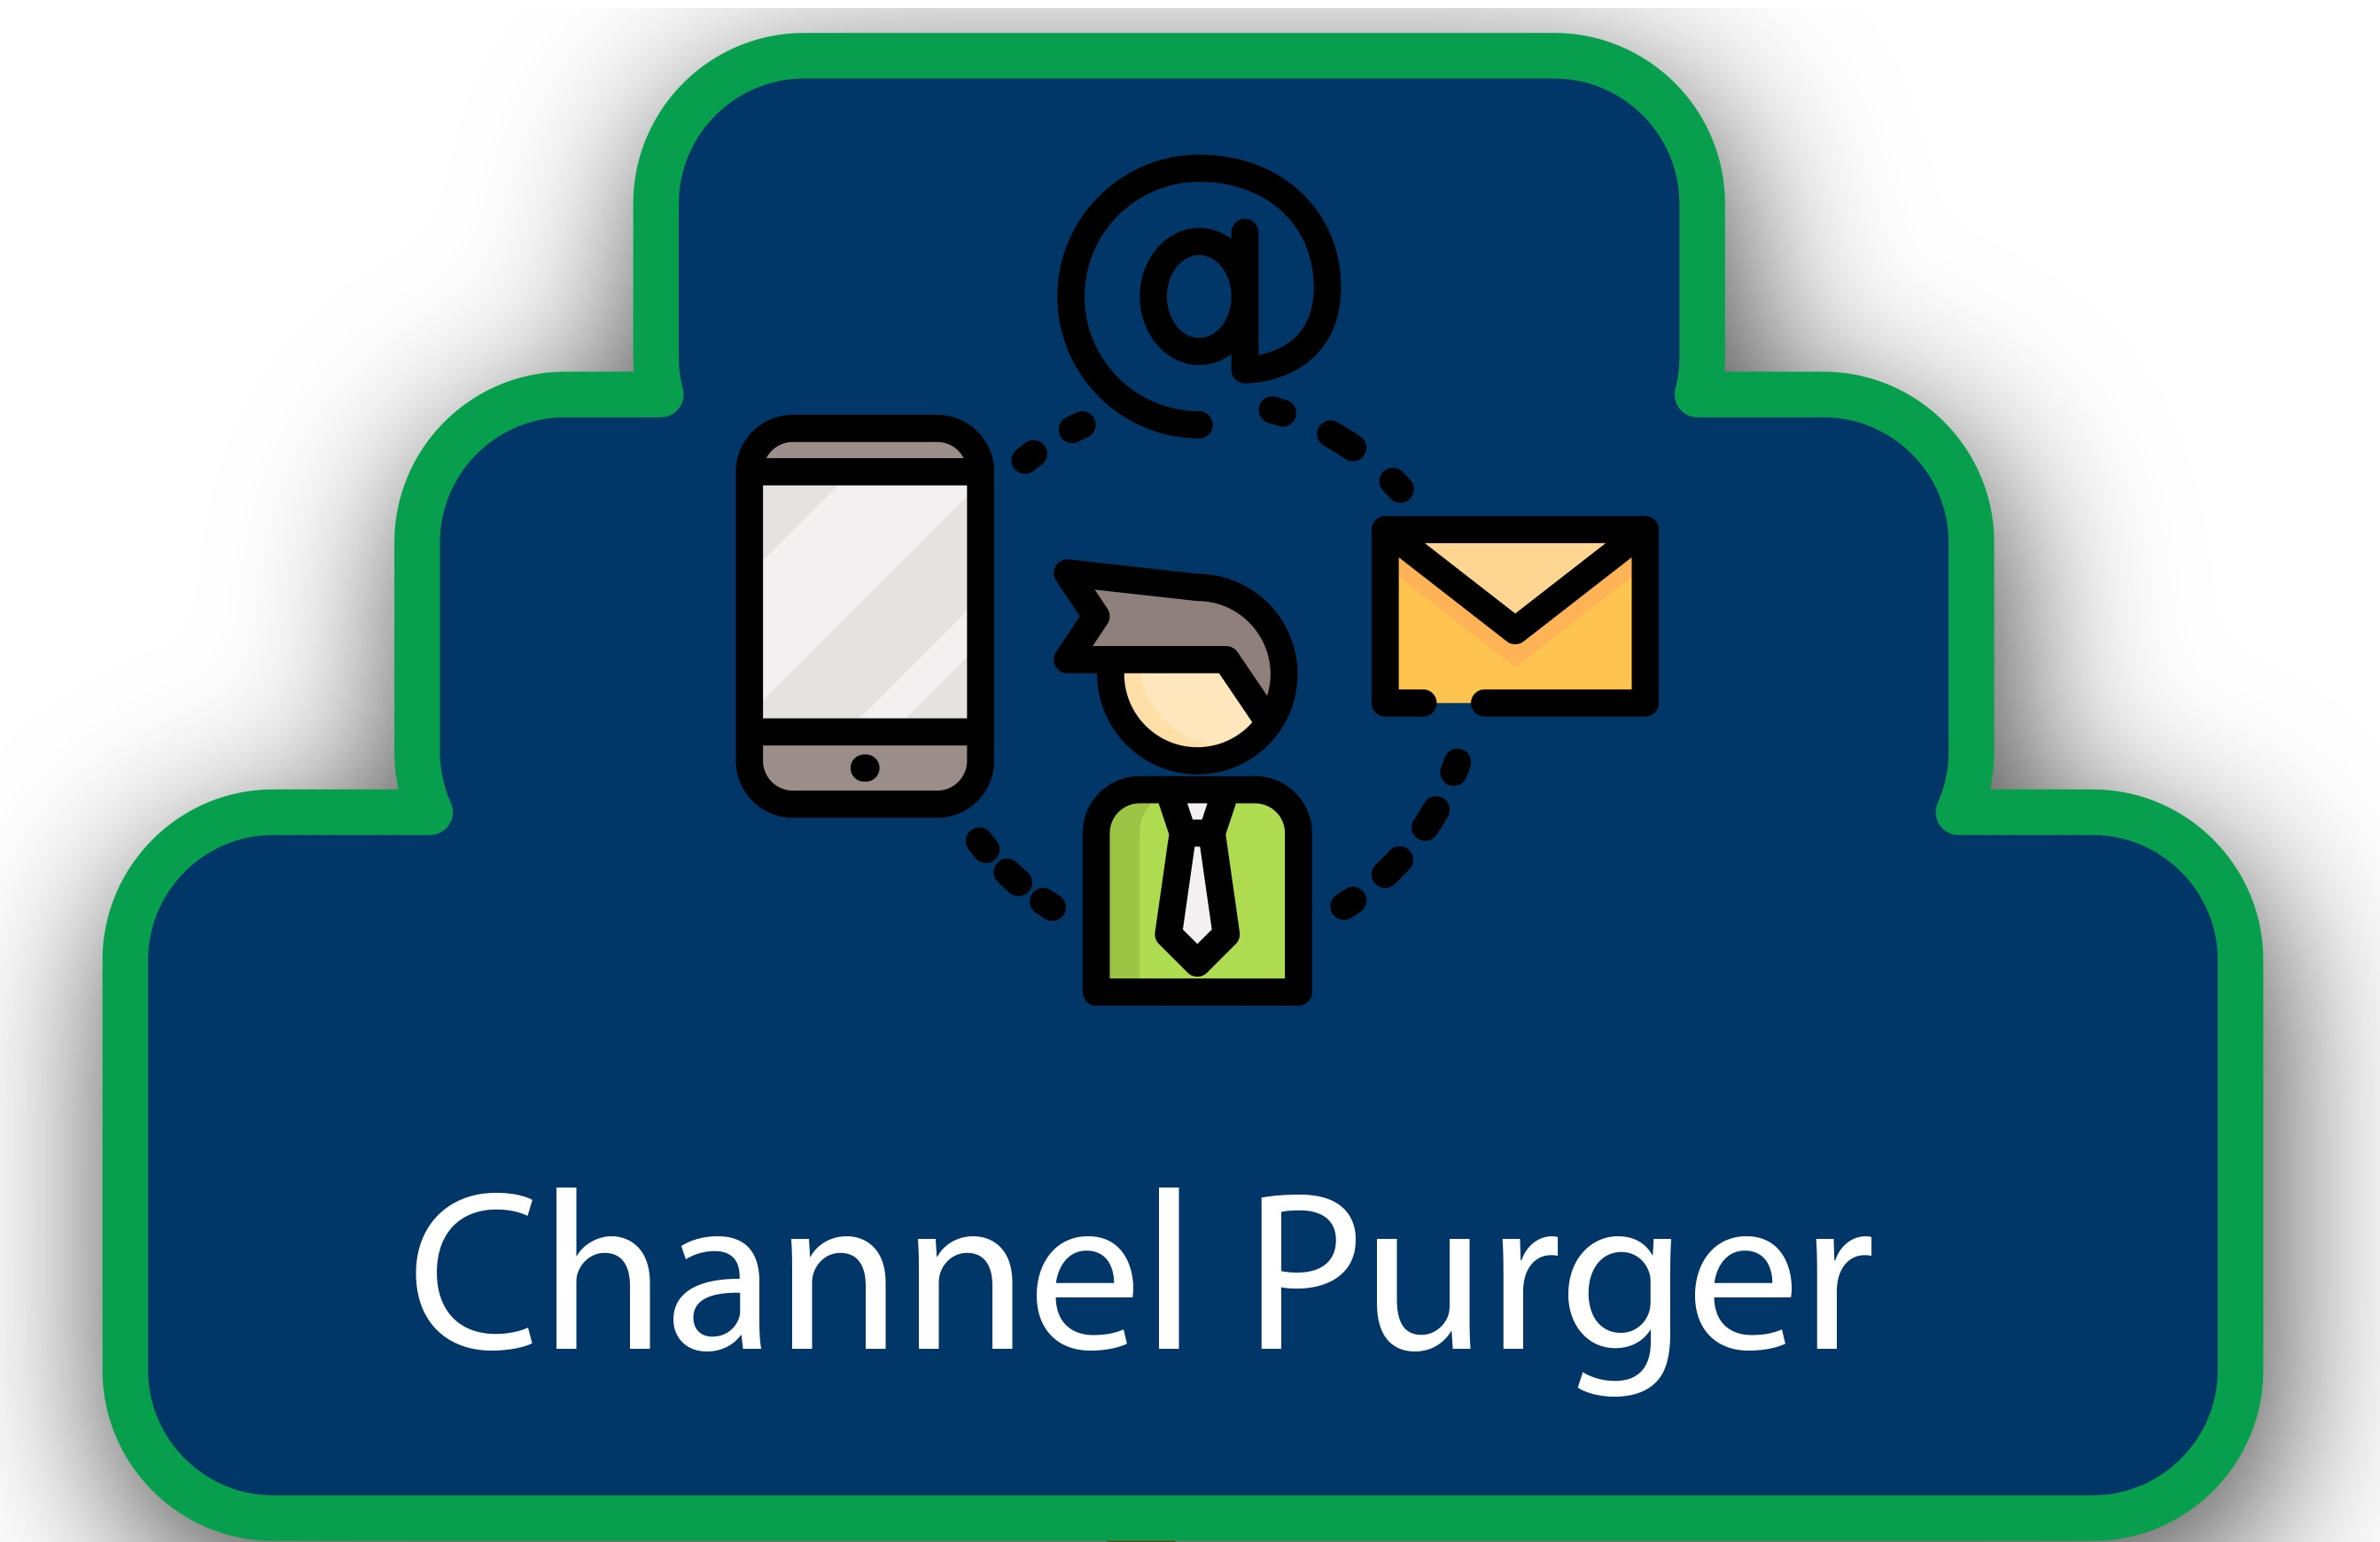 Channel Purger